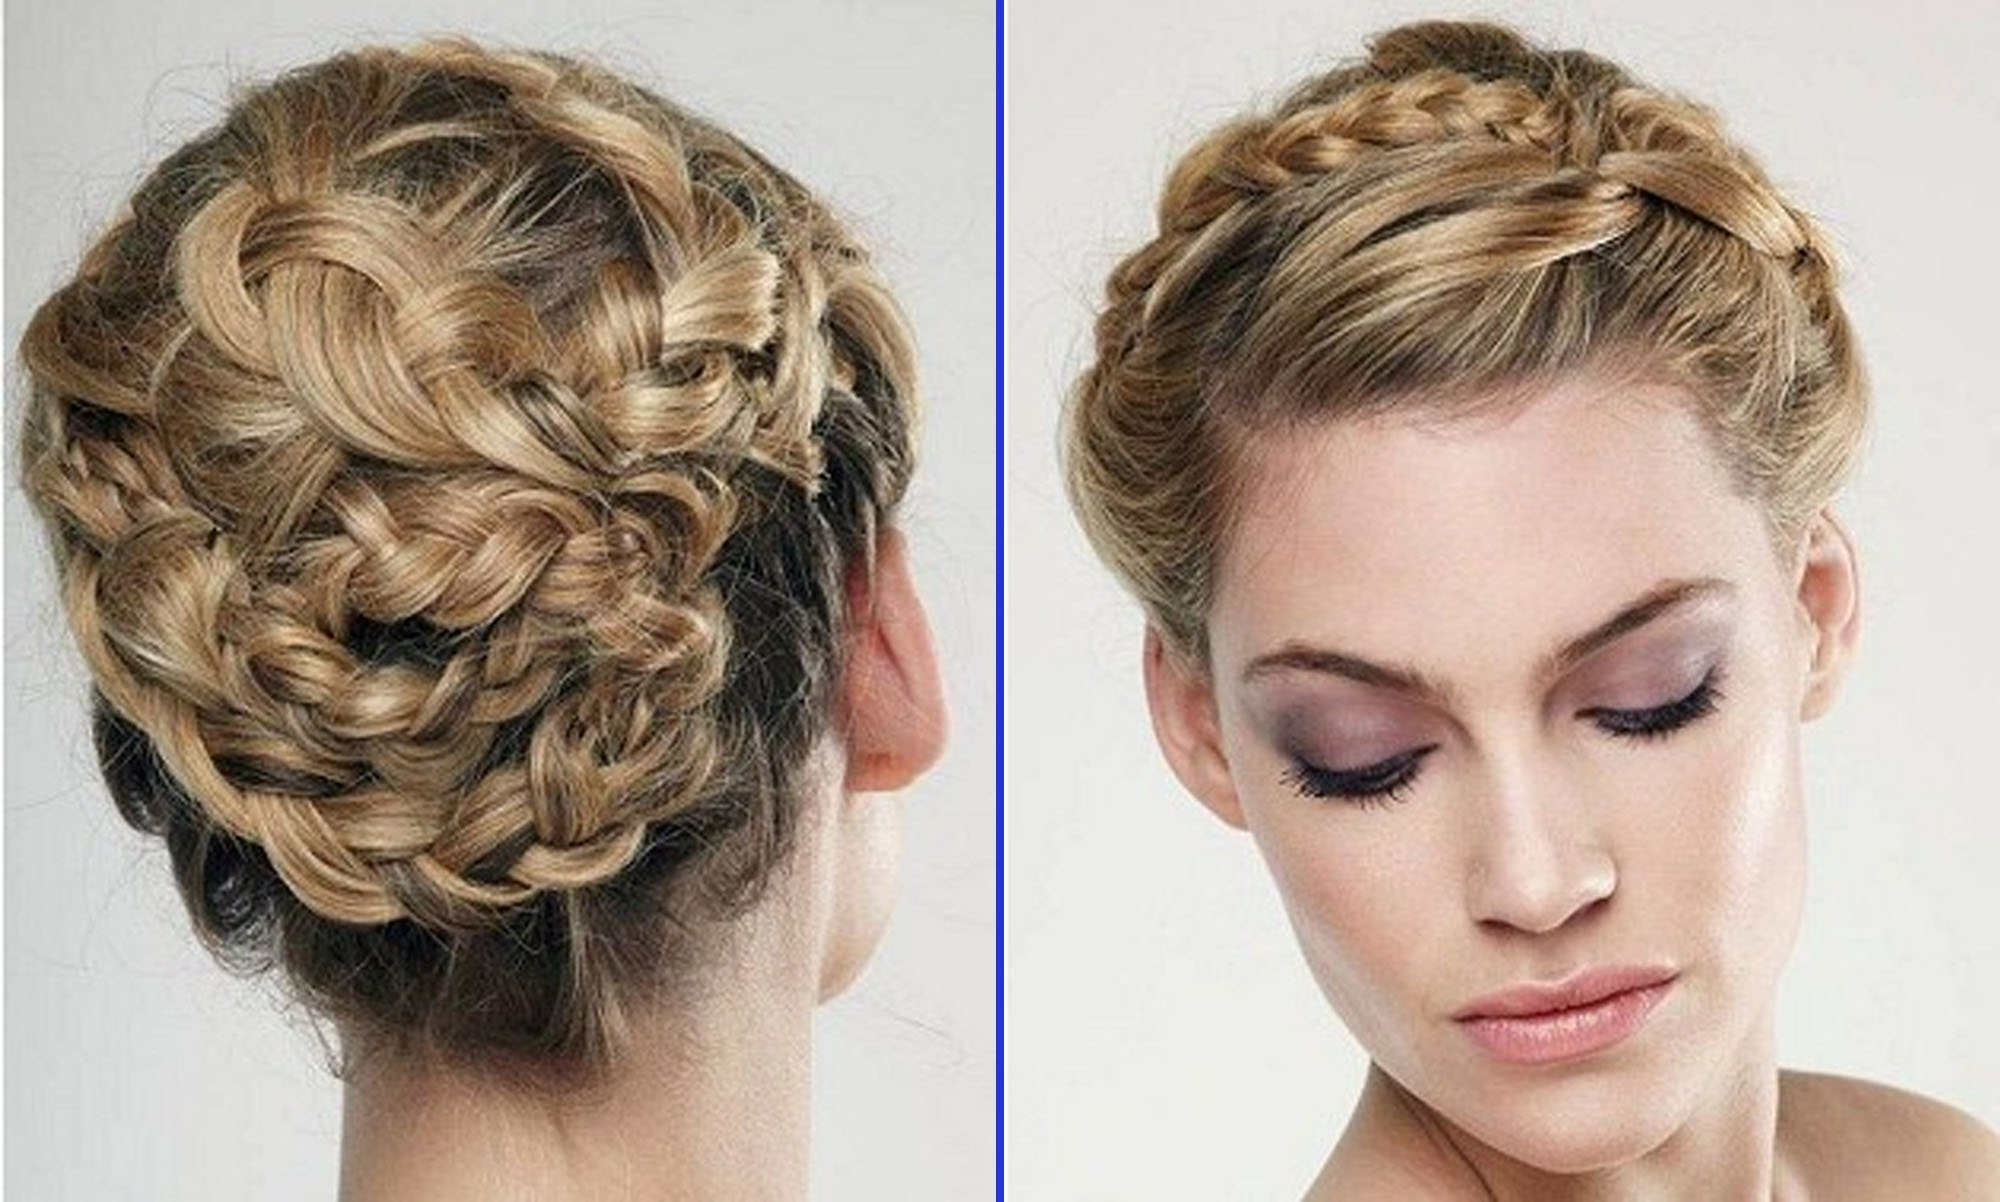 Preferred Plaits And Curls Wedding Hairstyles Intended For Plait Wedding Hairstyles Braid Hairstyles Wedding Wedding Decor And (View 13 of 15)